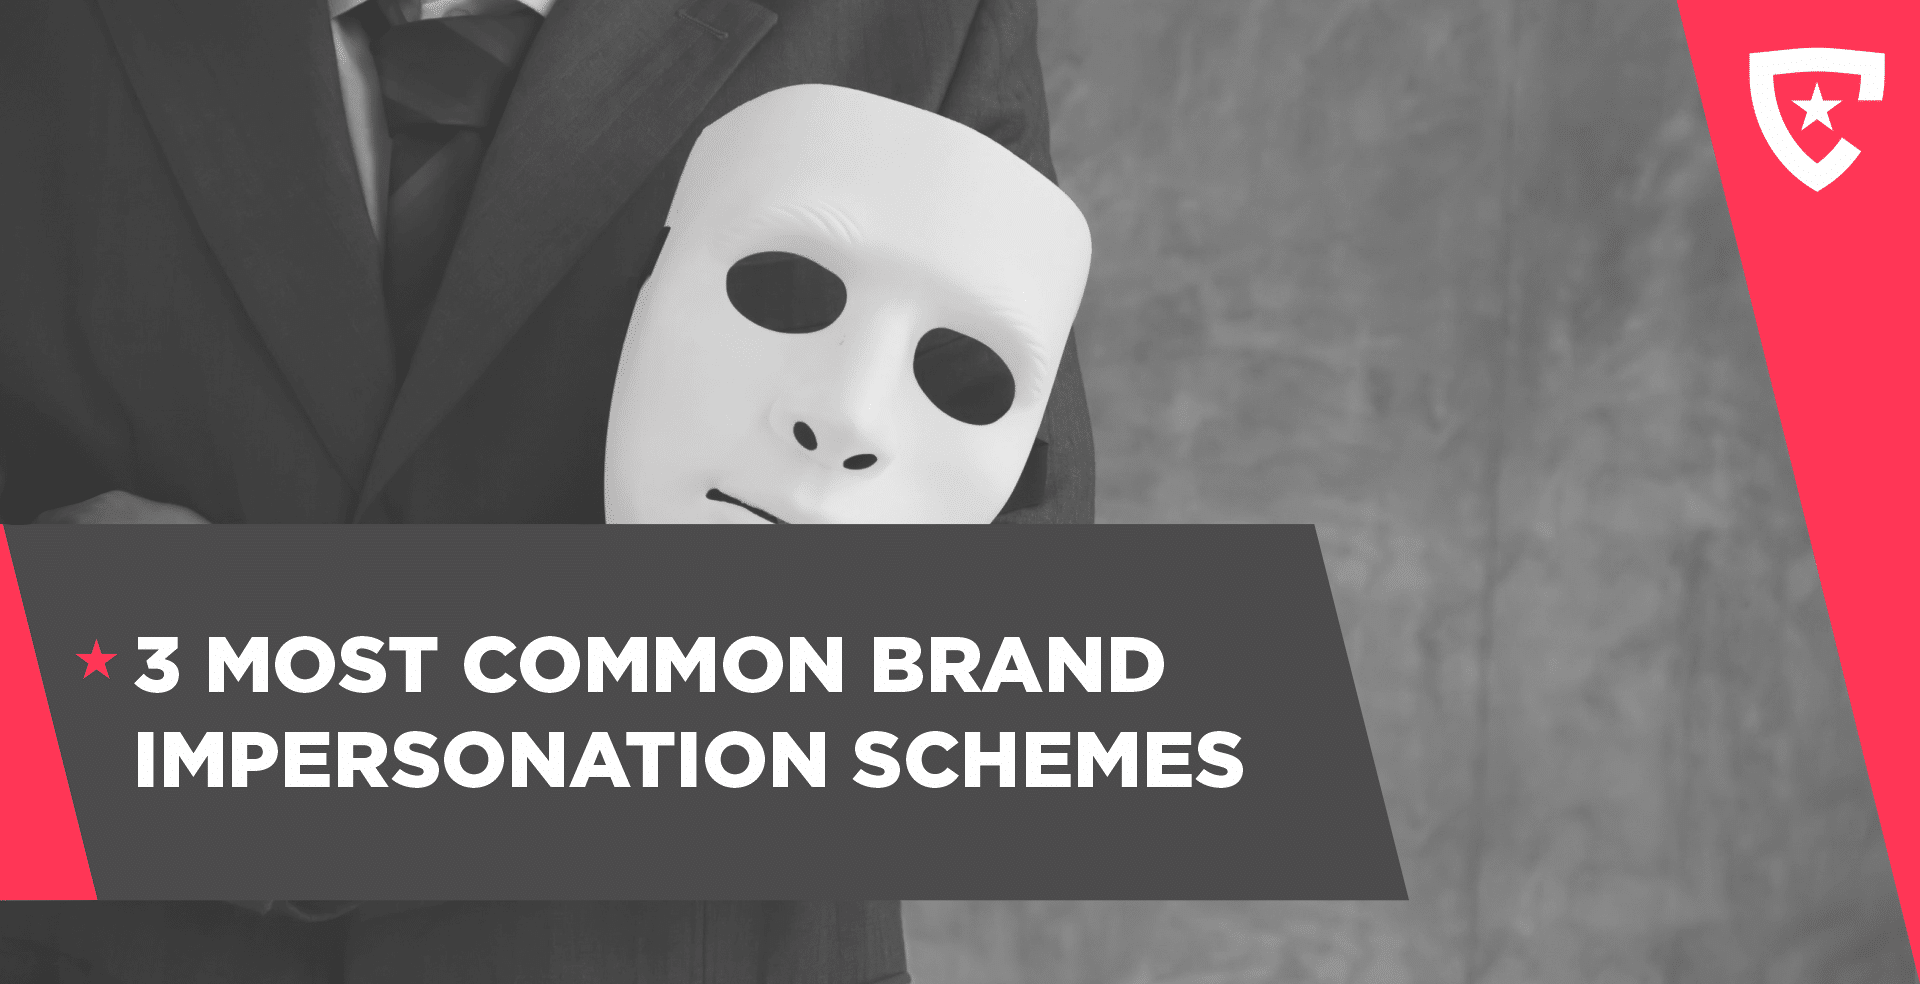 3 Most Common Brand Impersonation Schemes